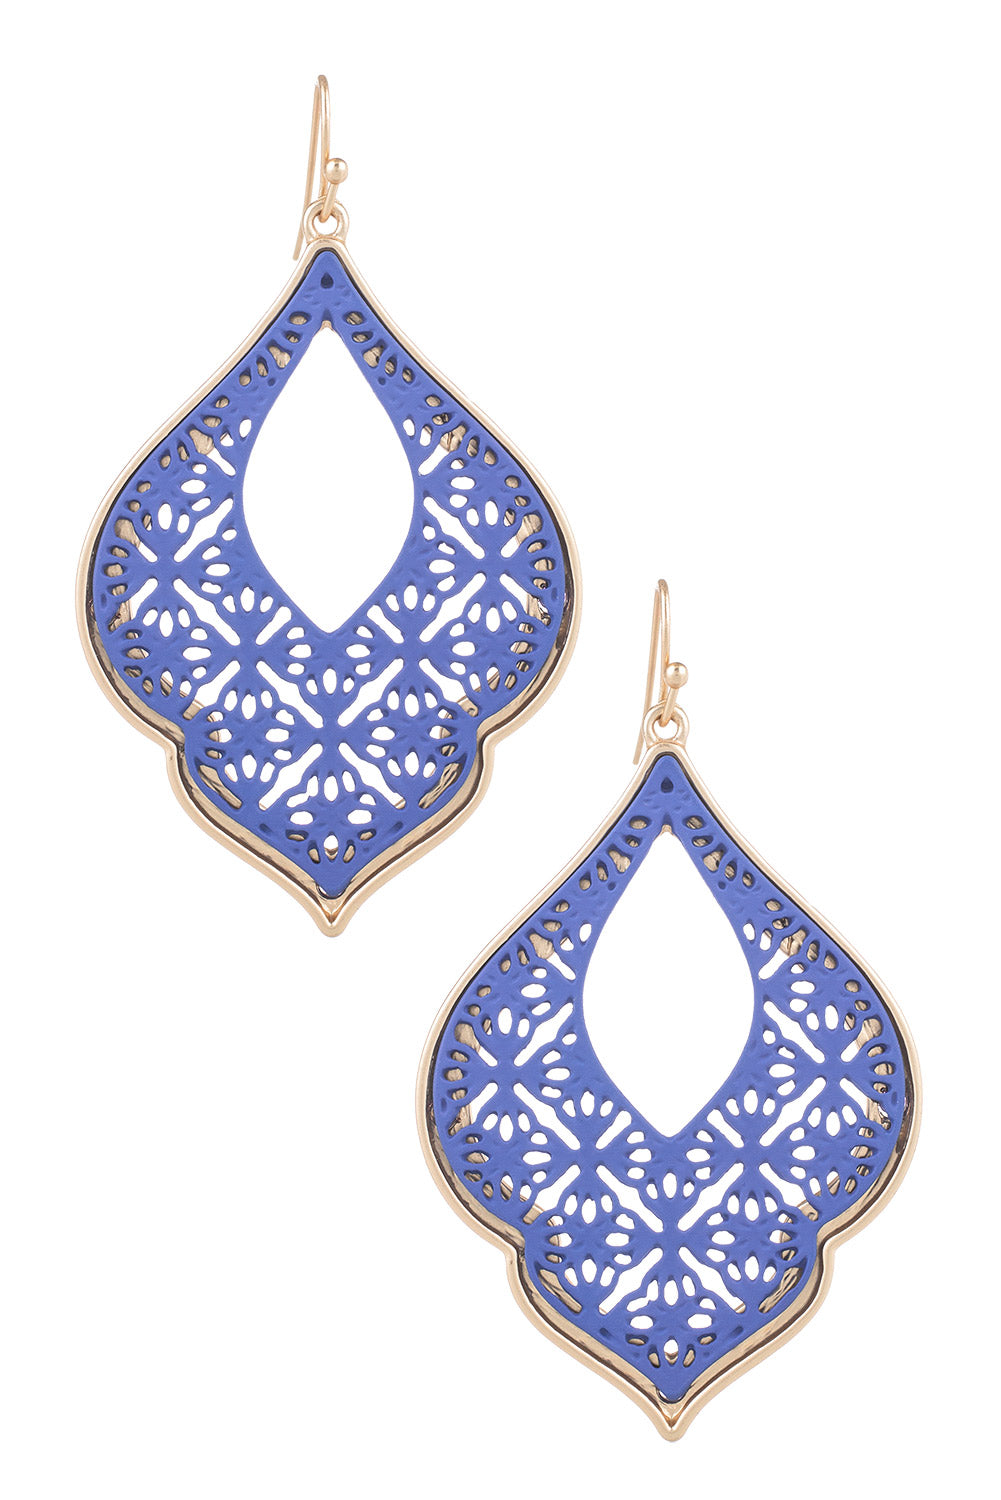 Type 1 Taj Mahal Earrings